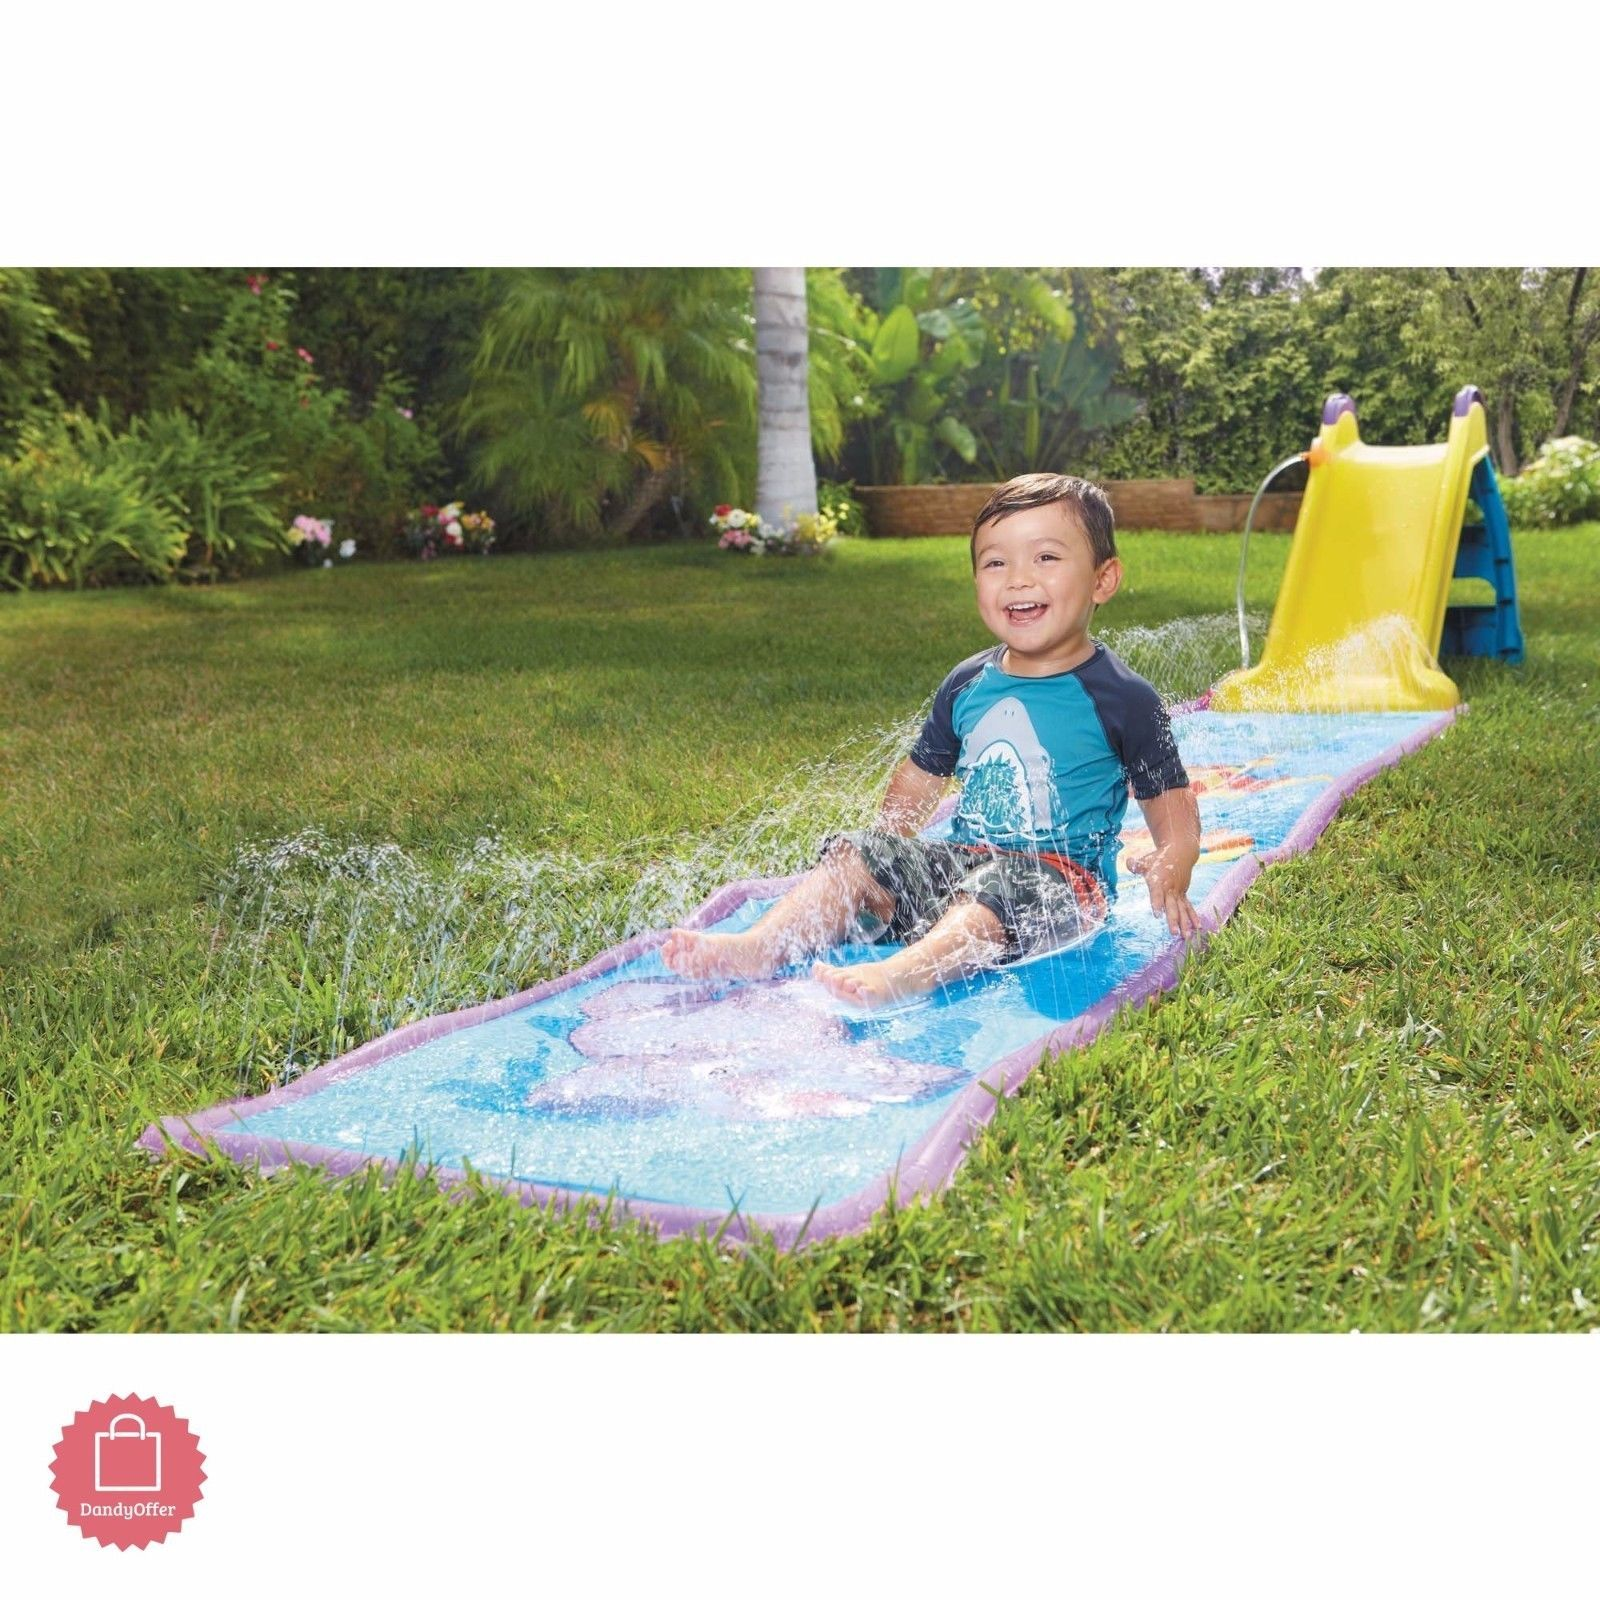 Outdoor Toys Toddlers Boys Age 2 3 4 Girls Outside Water Kids